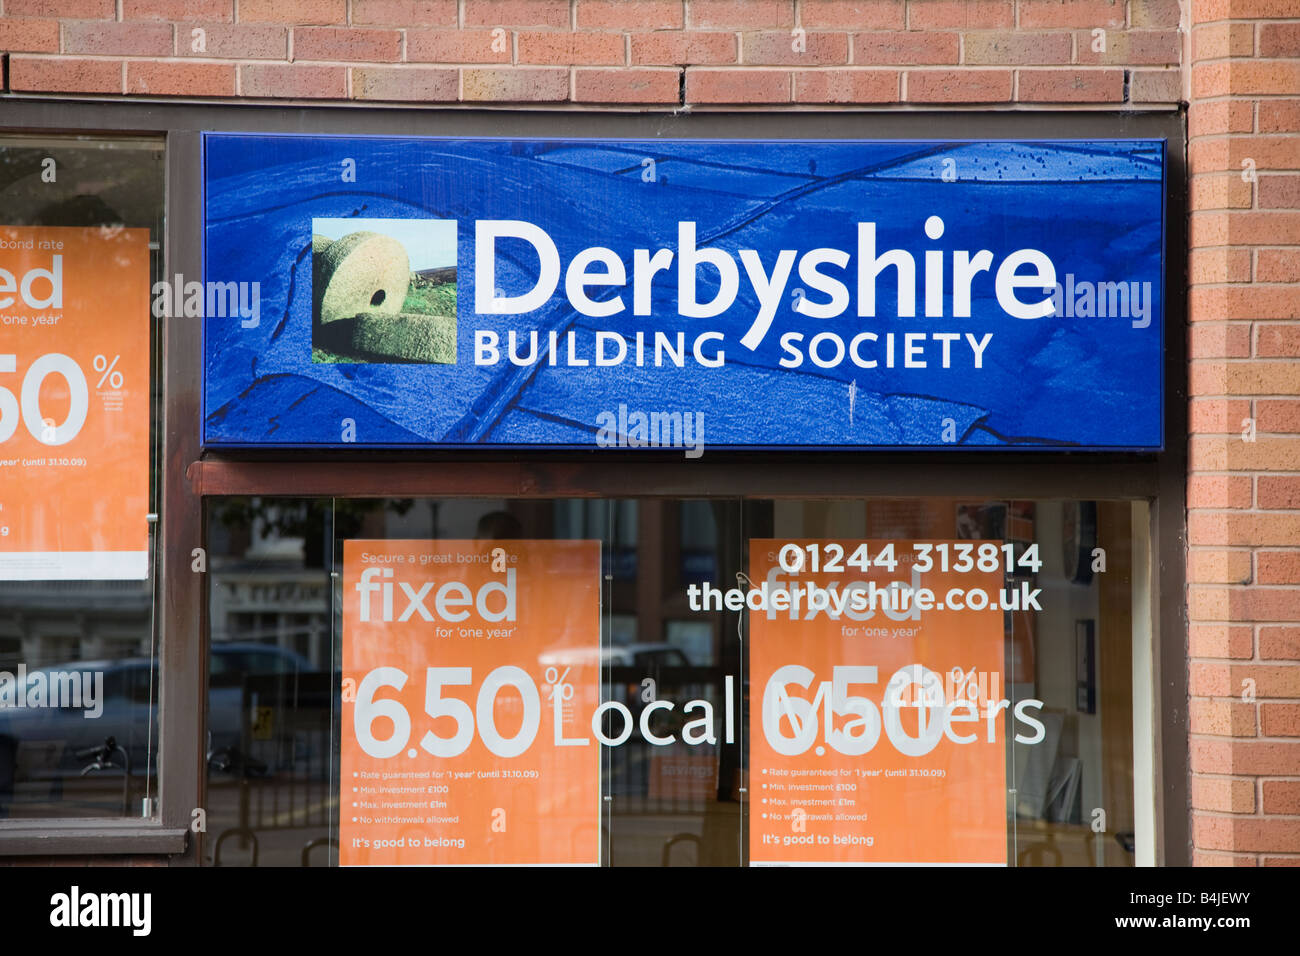 Derbyshire building society savings investment team name waitforexit example c++ oop